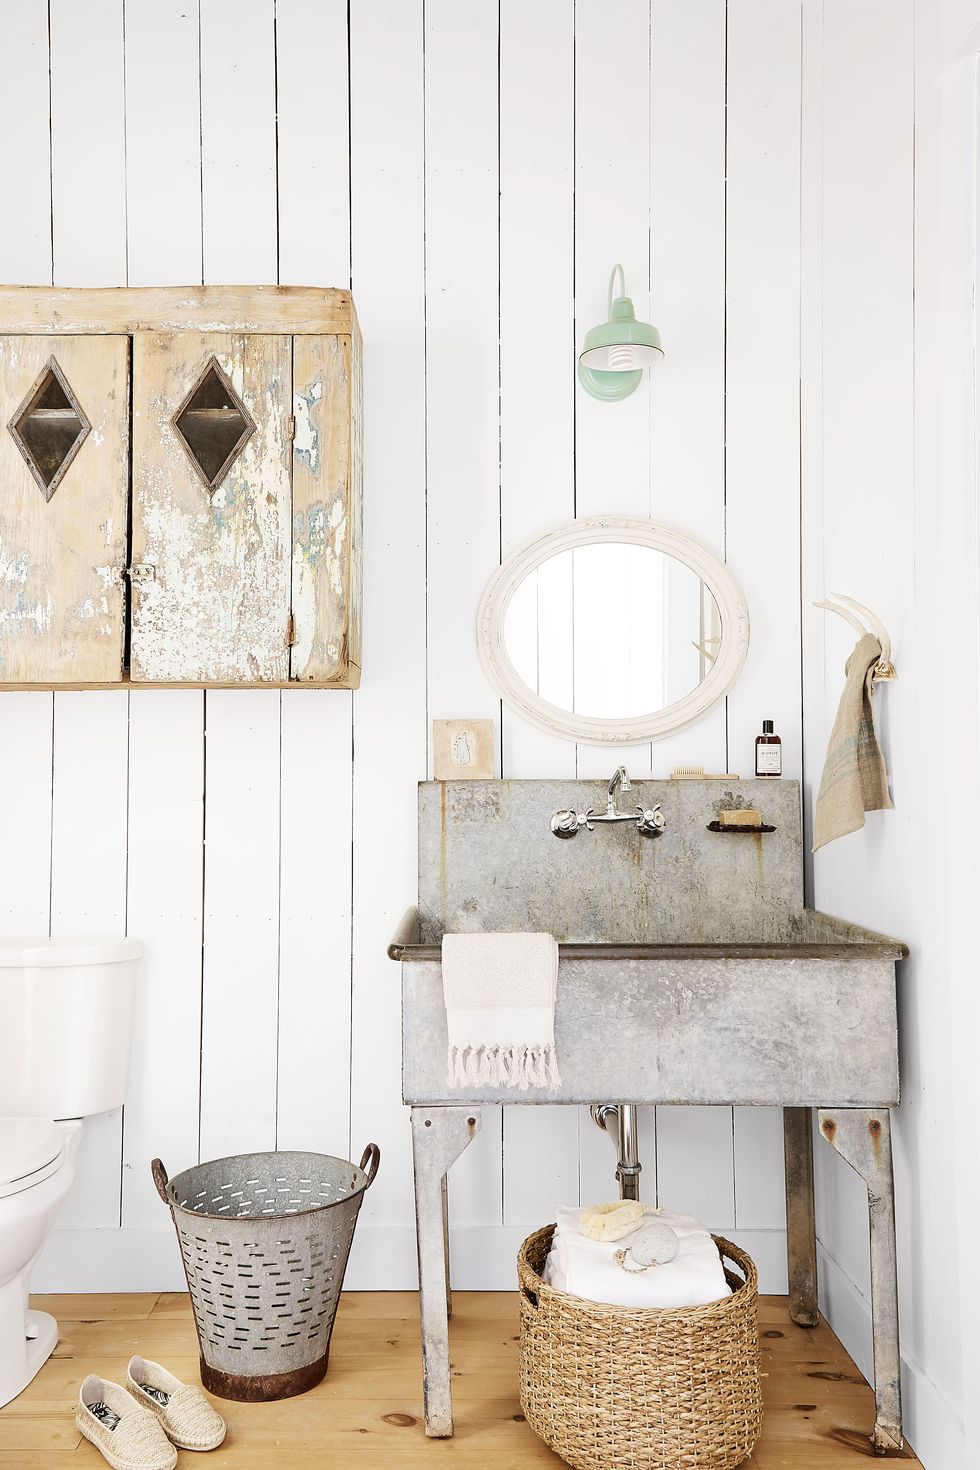 This french zink sink steals the show in this bathroom. Source: Country Living